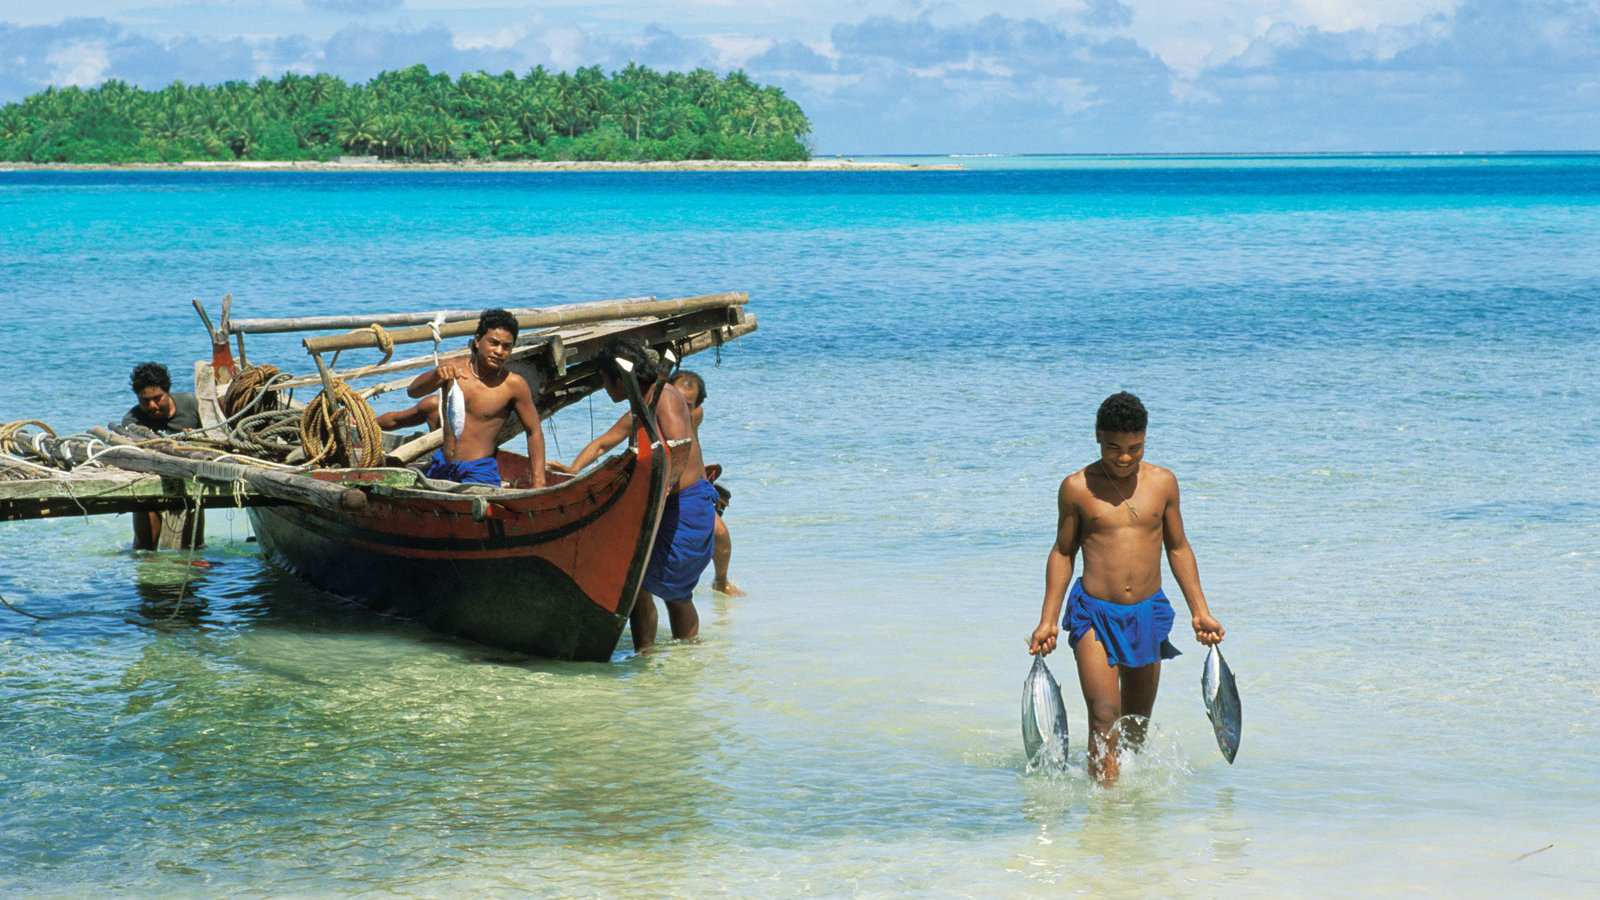 Explore the Pacific nation of Micronesia on a gay diving trip!